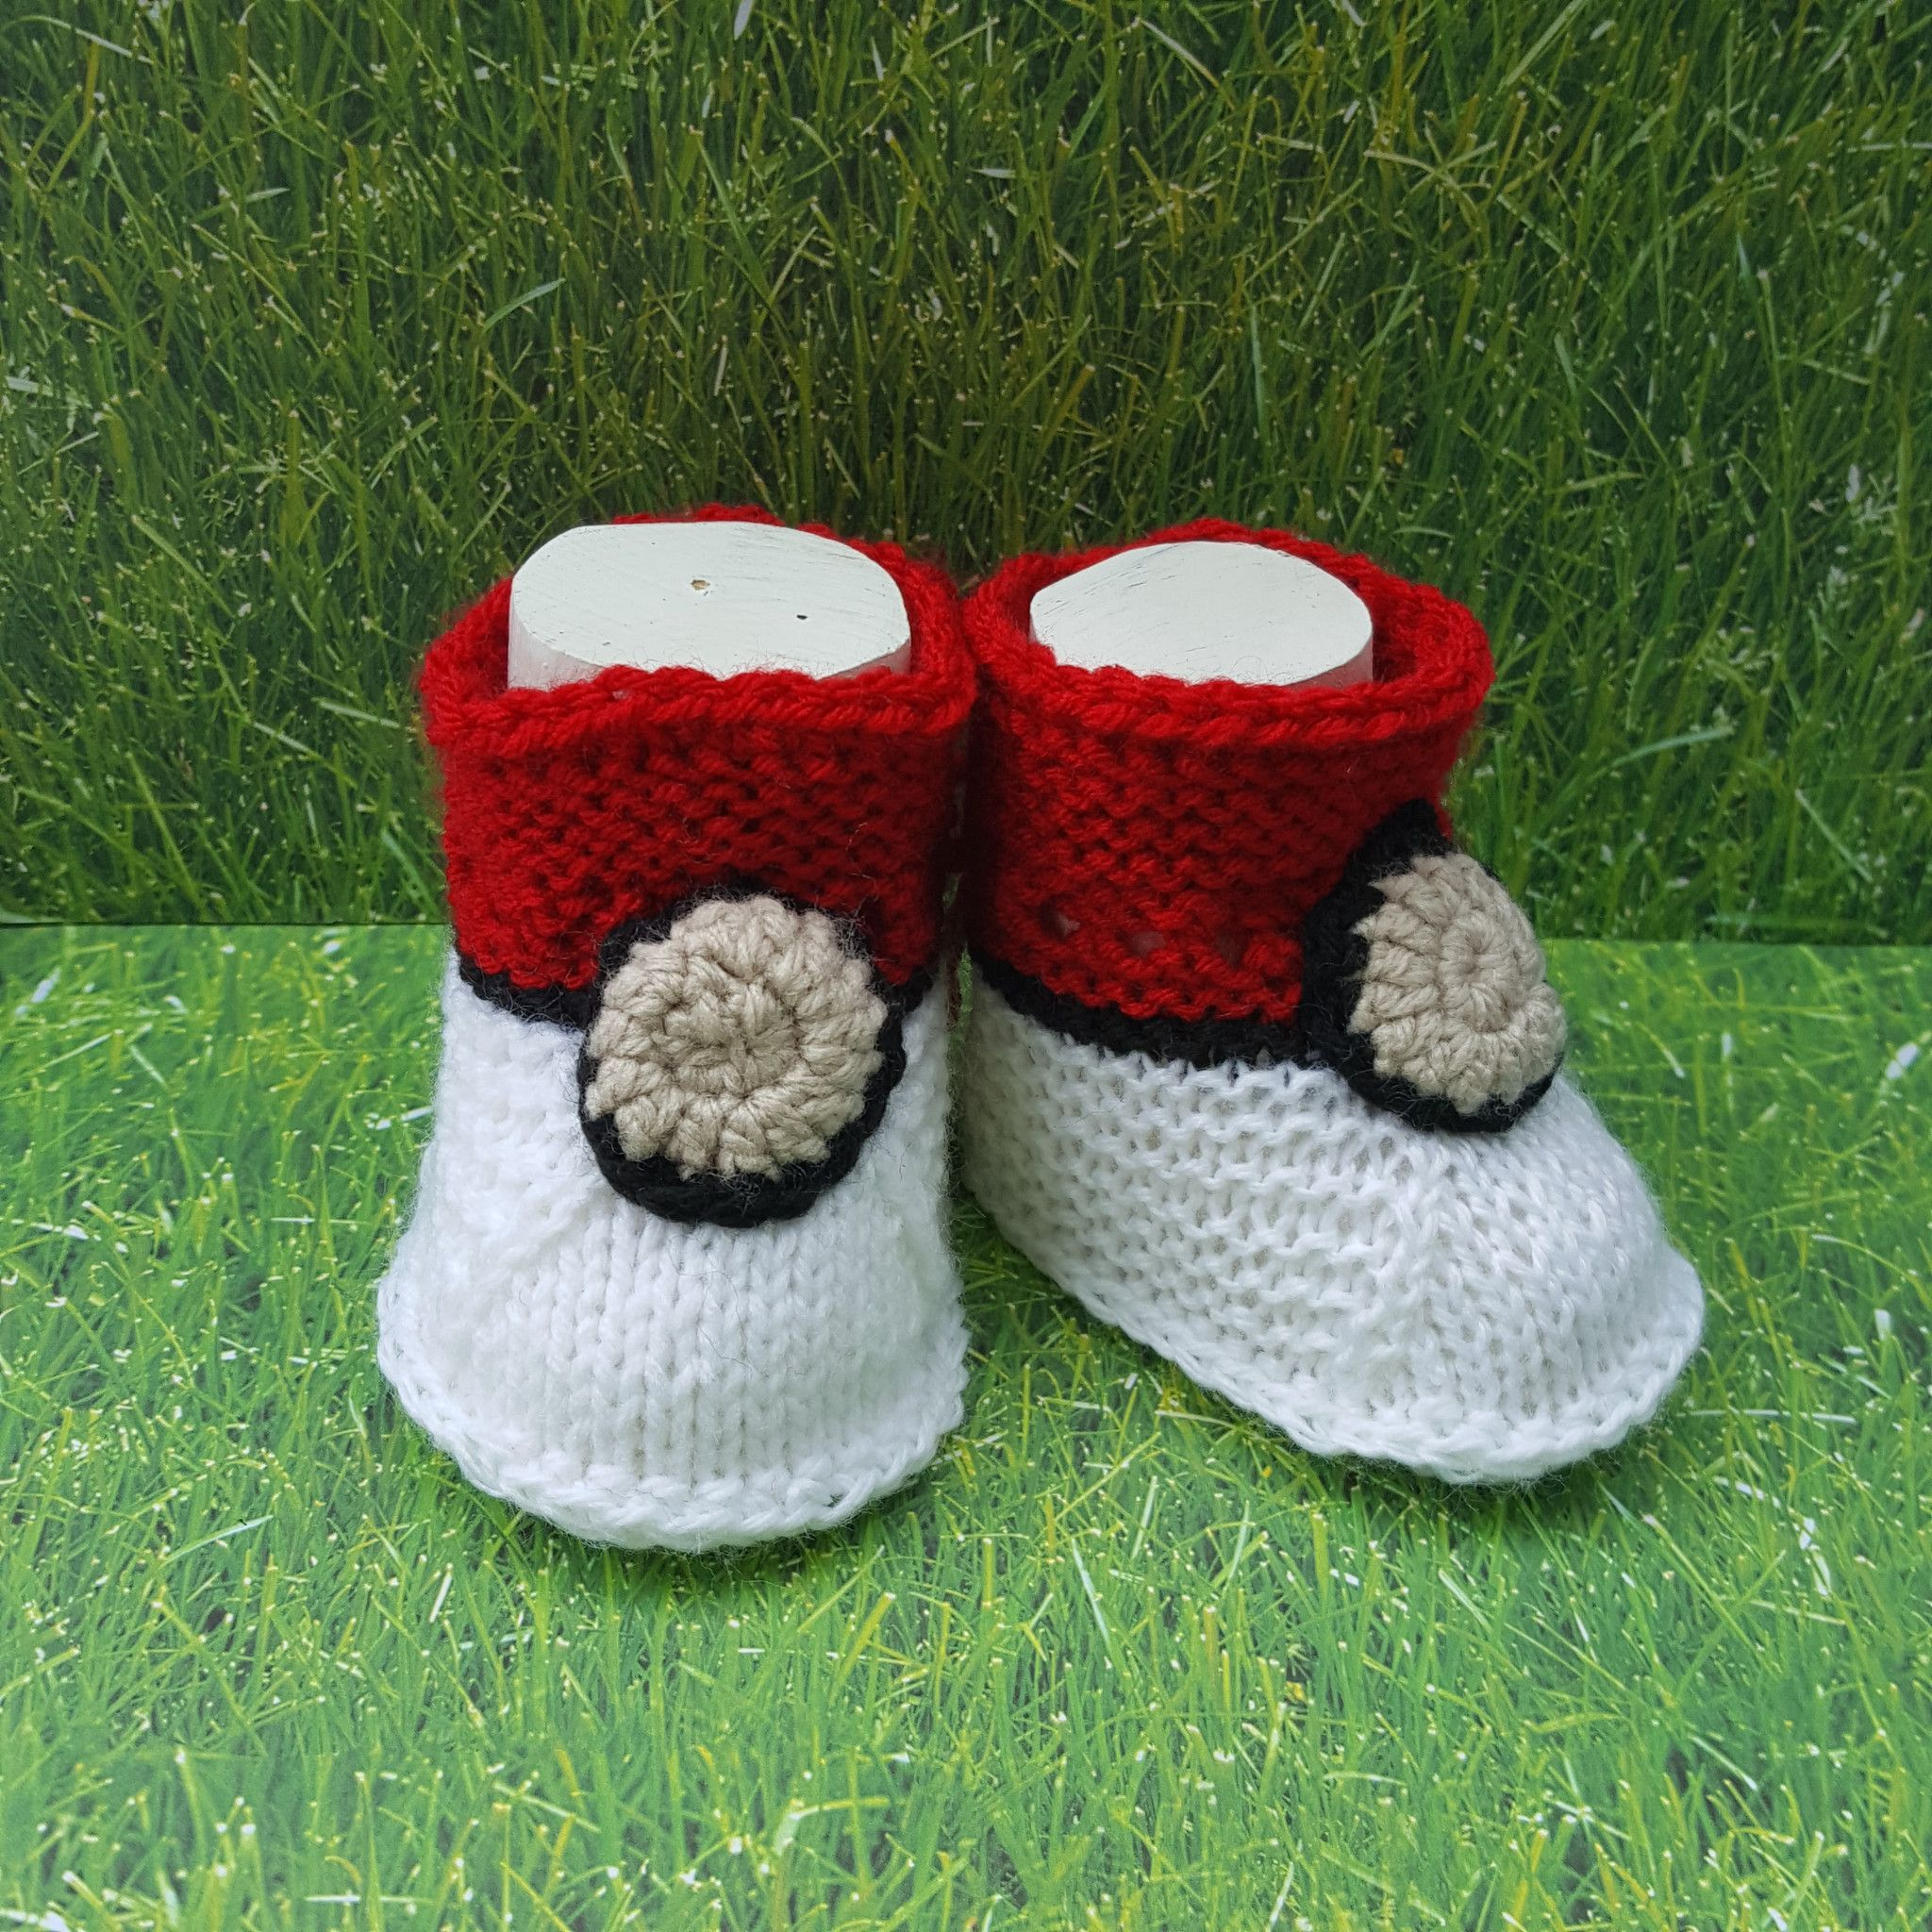 Knitted baby booties Pokemon Go yarn crafty fun